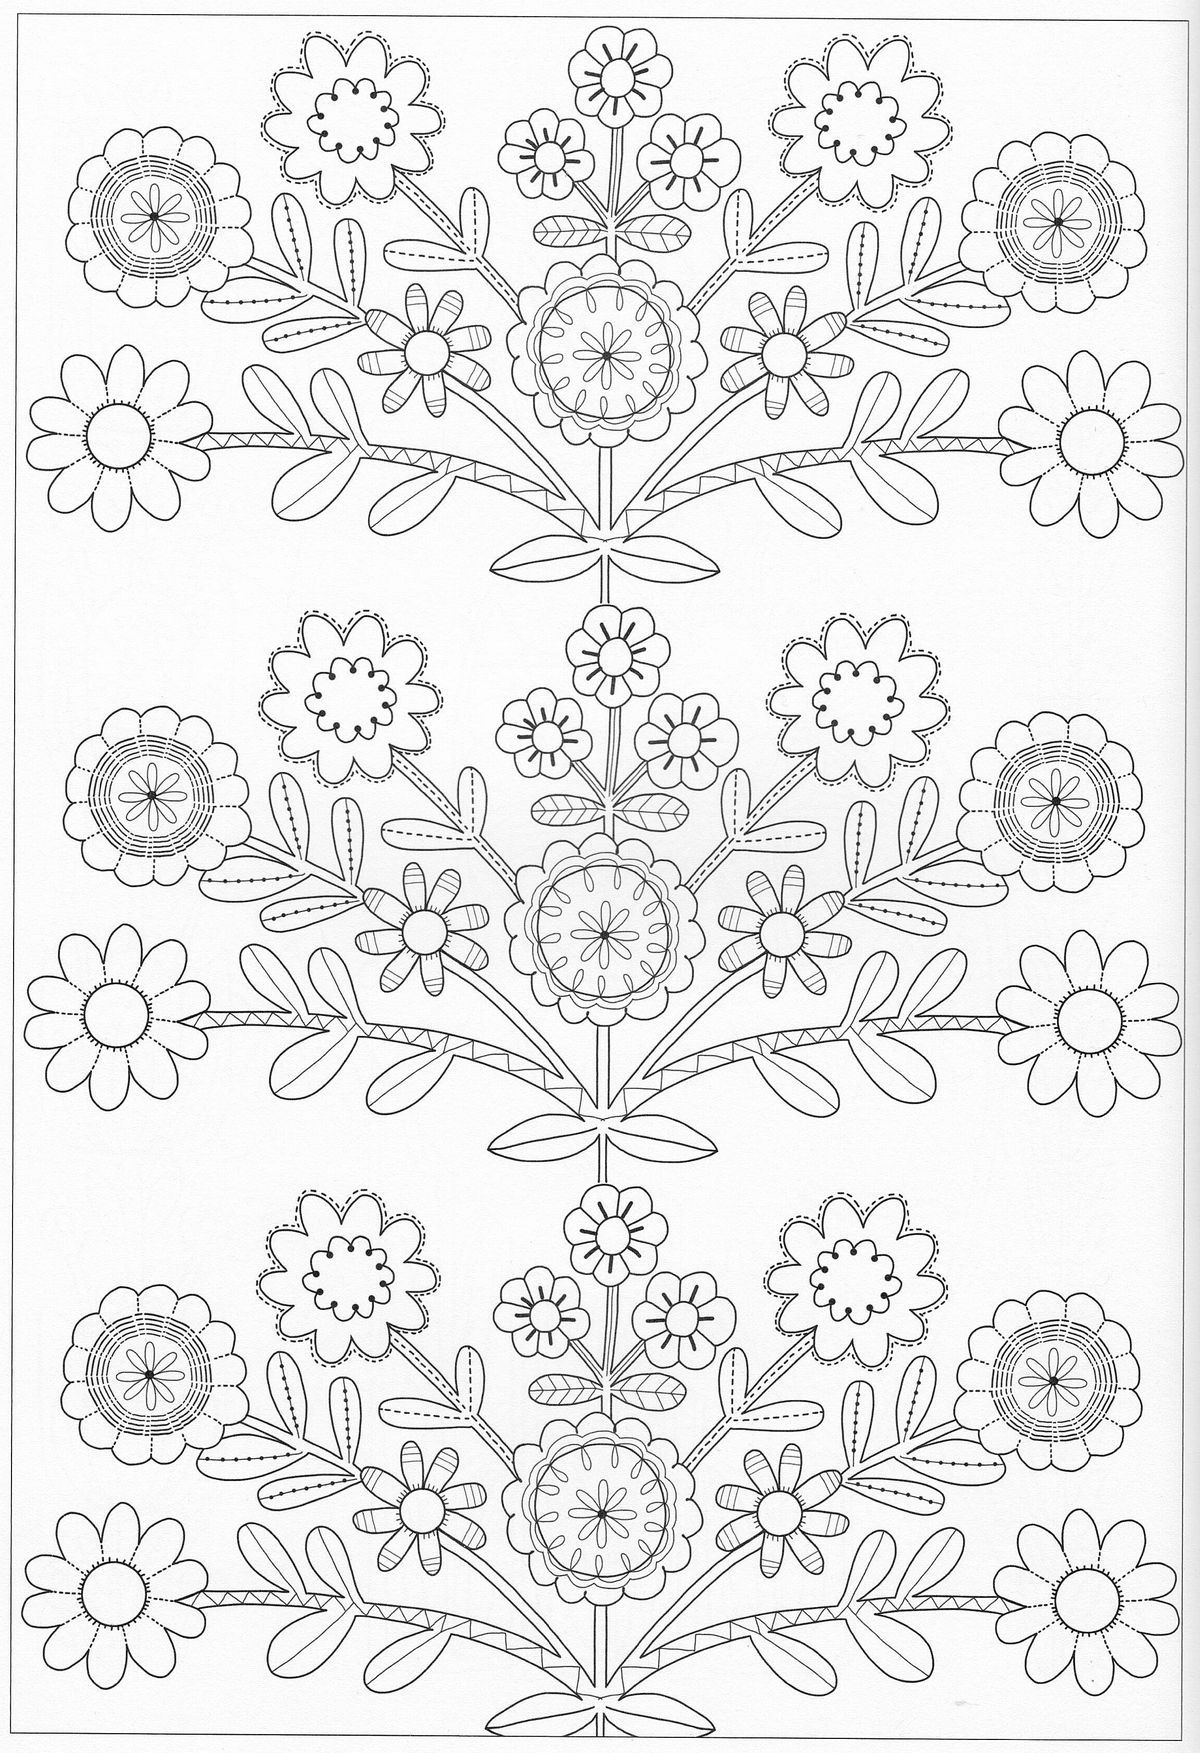 Scandinavian coloring book pg 45 pinterest coloring scandinavian coloring book pg 45 bankloansurffo Image collections